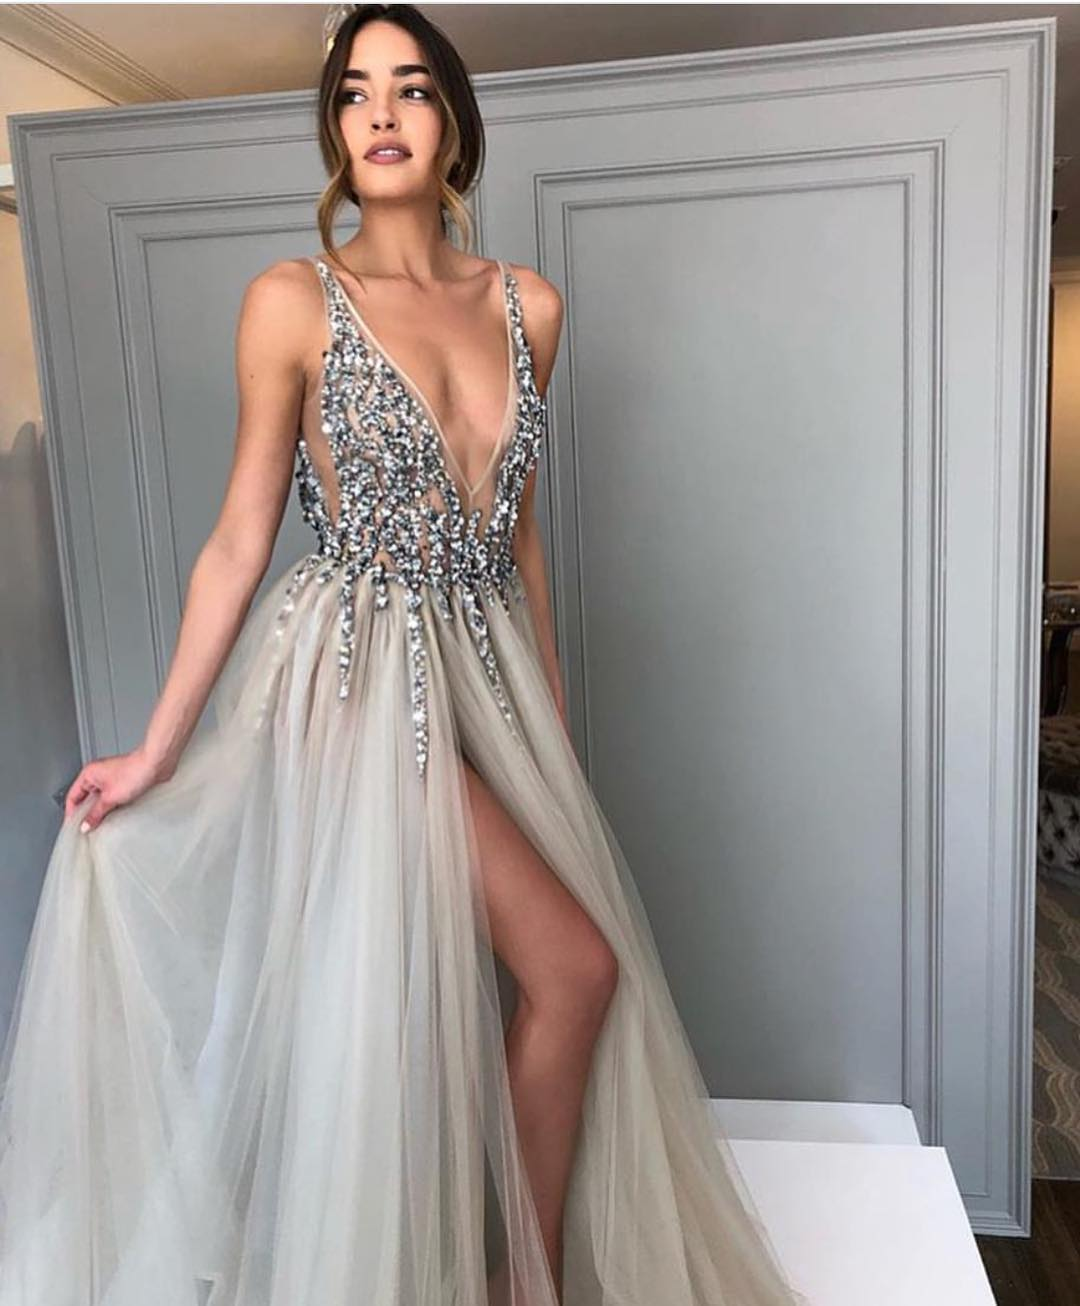 Maxi Dress With Tulle Skirt And Sequin Embroidered Top For Prom Night 2020